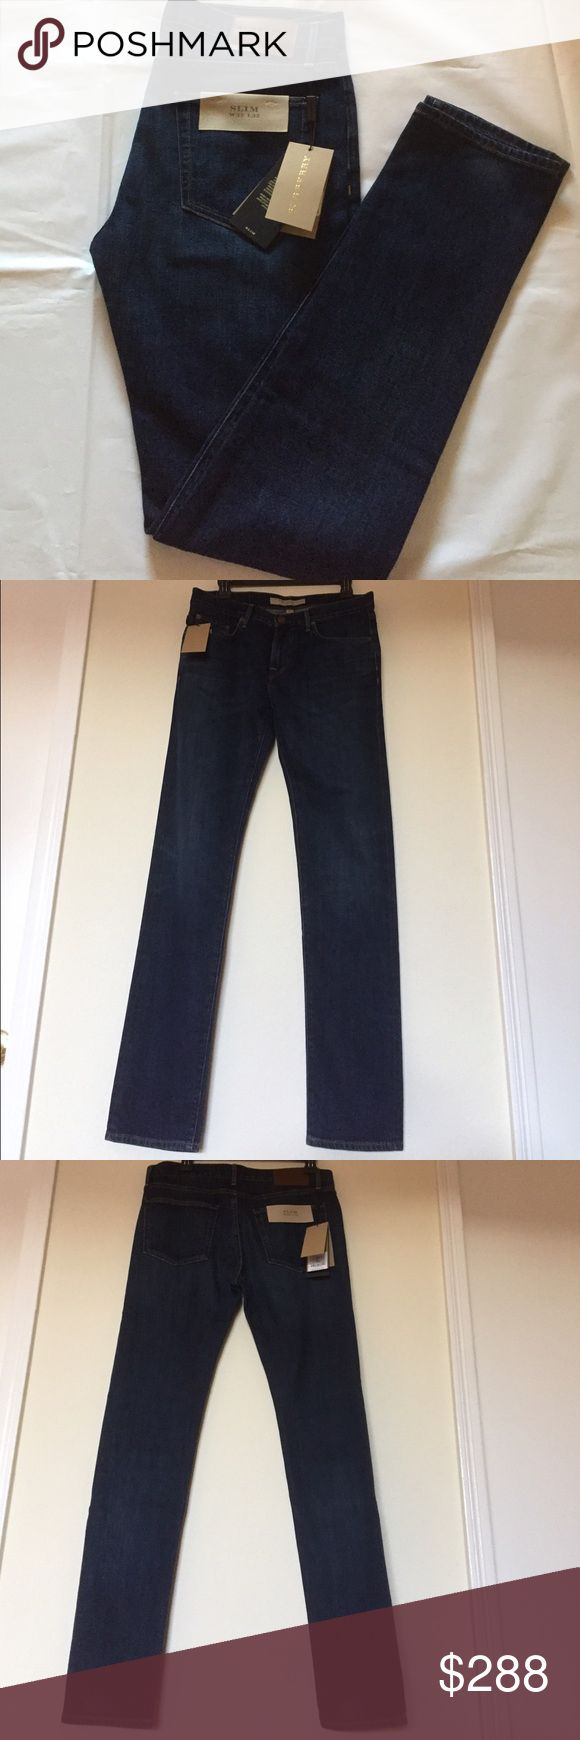 """🆕 Burberry Brit Slim Jeans Burberry Brit Men's Slim Jeans. Brand New with tags and 100% authentic! 99% Cotton 1% Elastane . Made in USA. Inseam 32.5"""", Waist ~32.5""""-33"""", front rise 9.5"""". Selvedge Denim. Burberry Jeans Slim"""